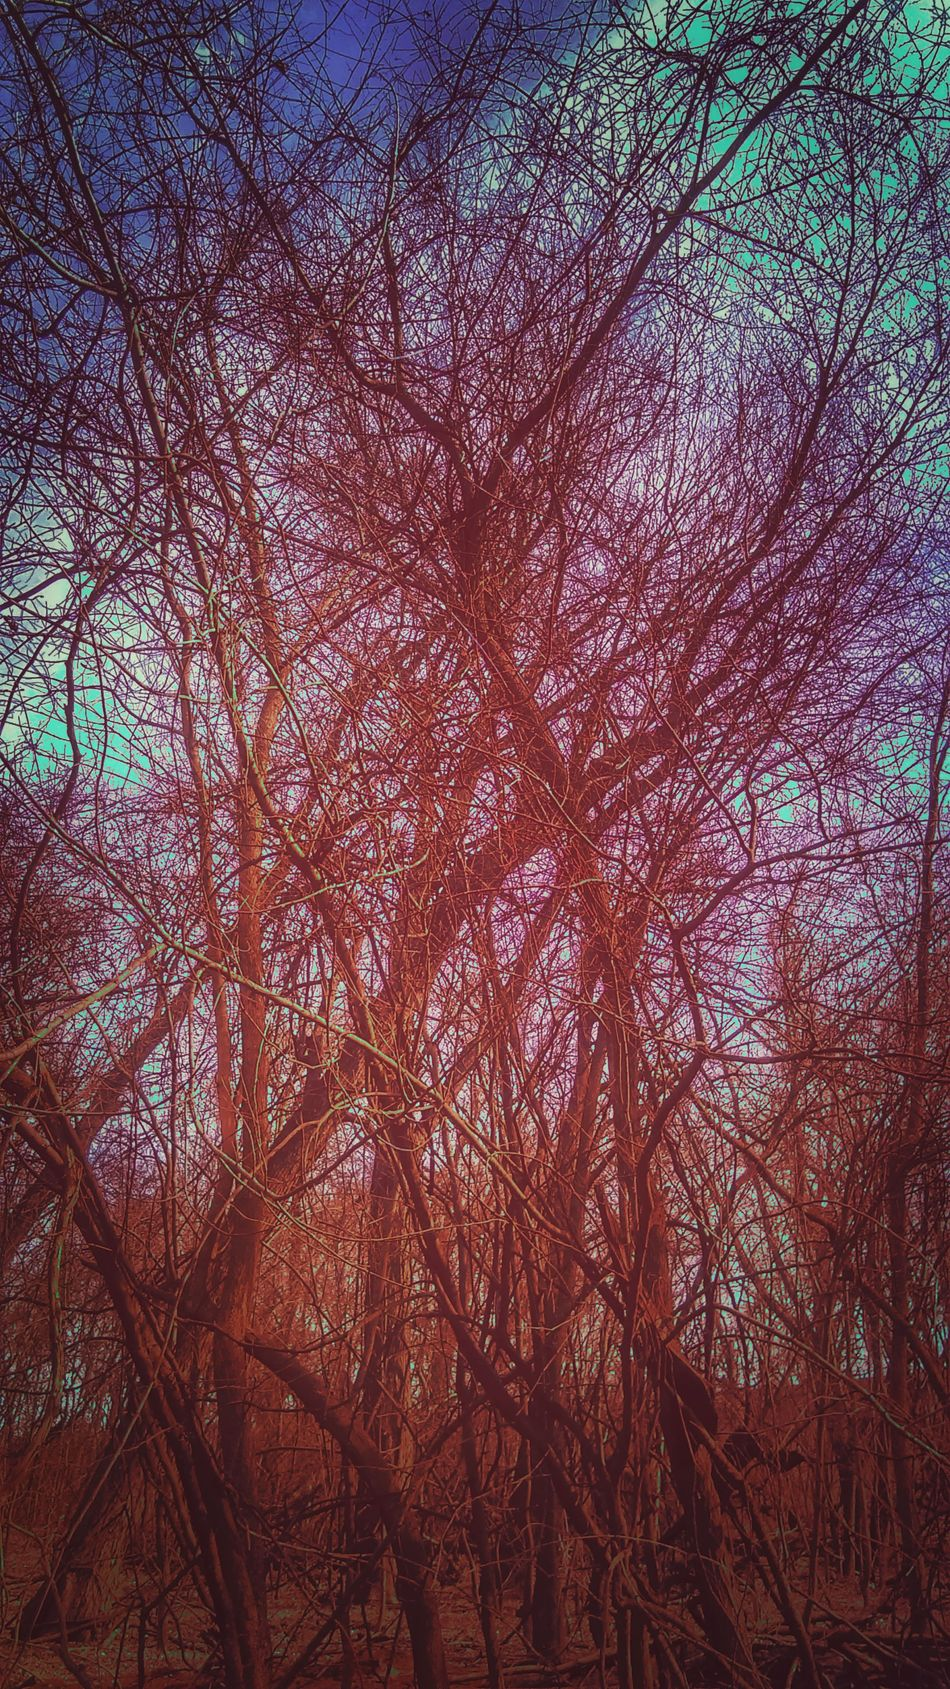 The Impurist Forest Of Lost Souls Night Divides The Day TreePorn Brush The Sky No People Only Nature Seeing Red Again